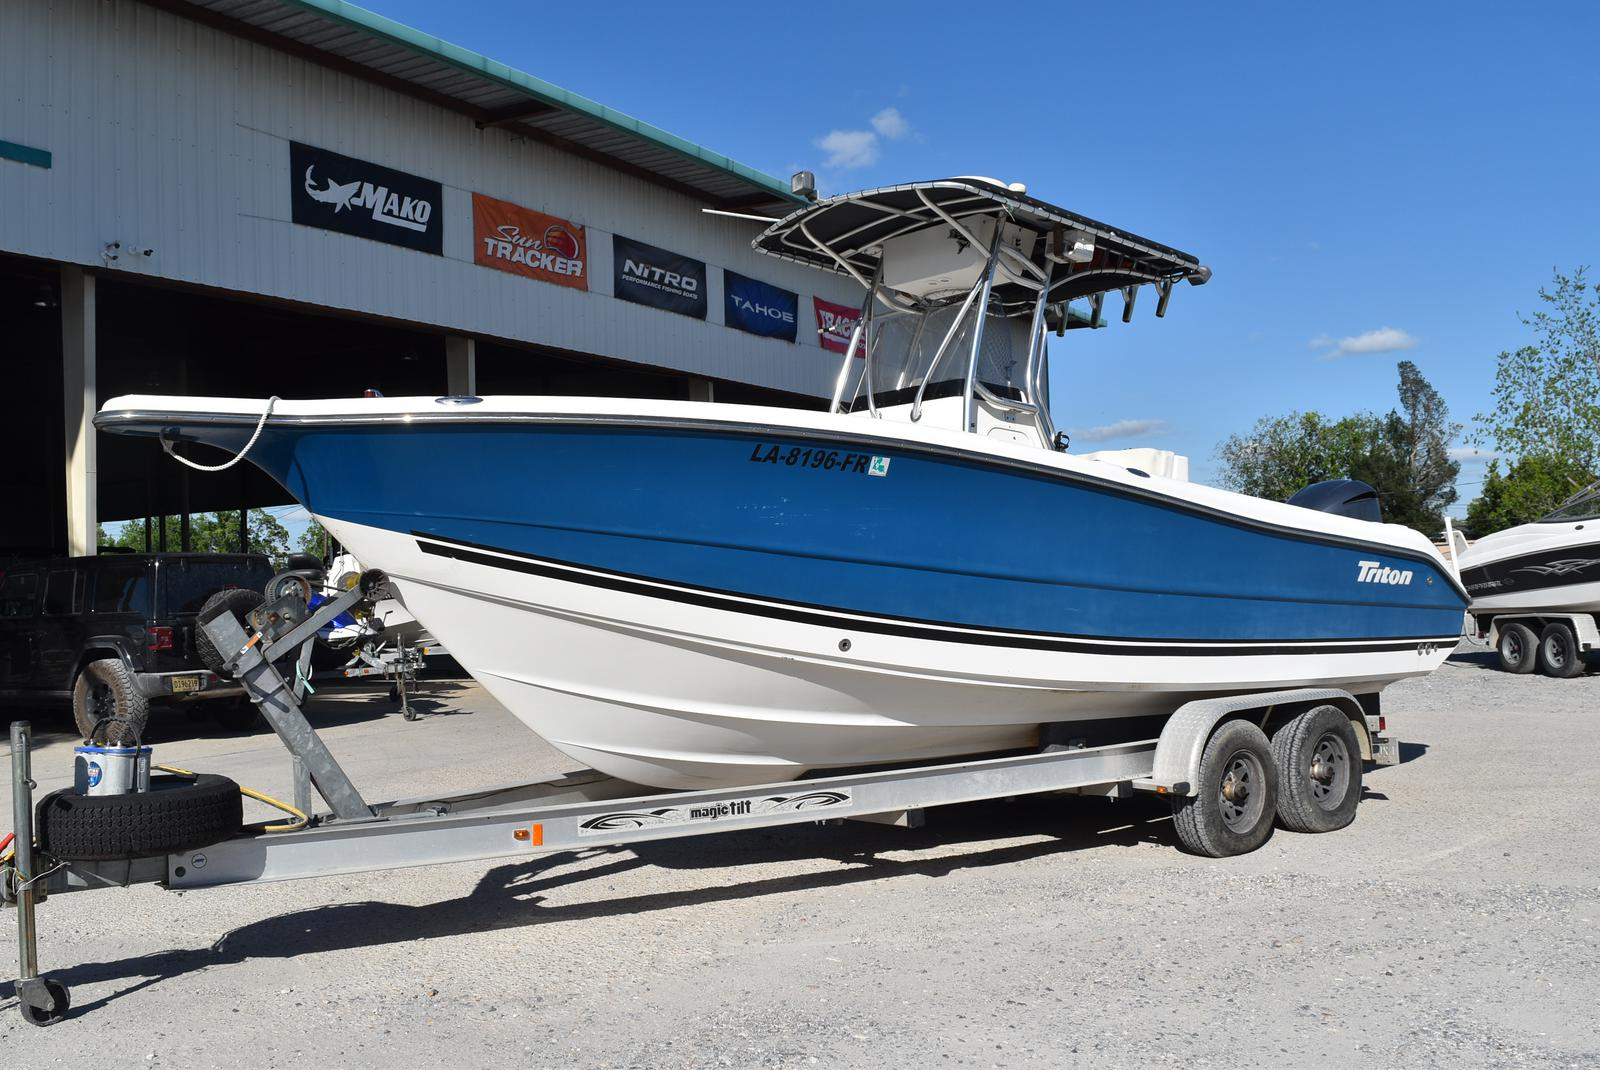 2006 Triton boat for sale, model of the boat is 2486 & Image # 1 of 24